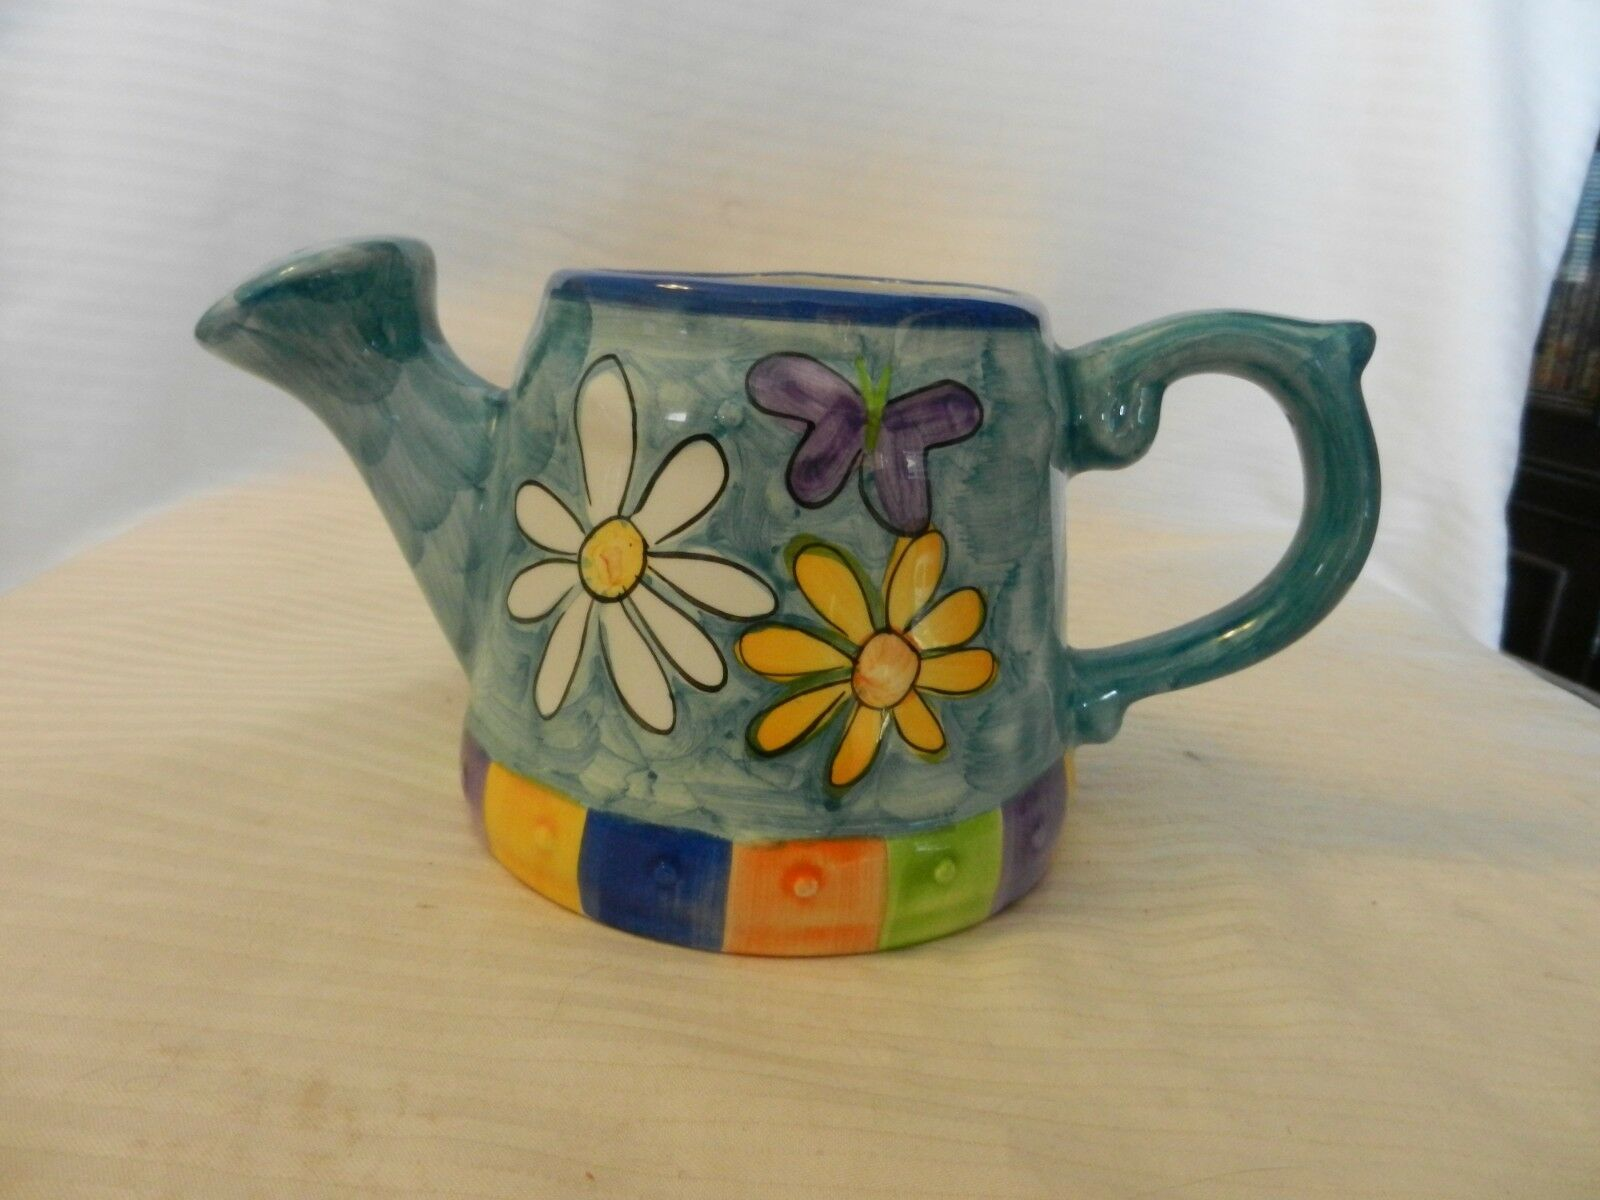 Blue Ceramic Plant Watering Can With Flowers, Multicolored from OGGI